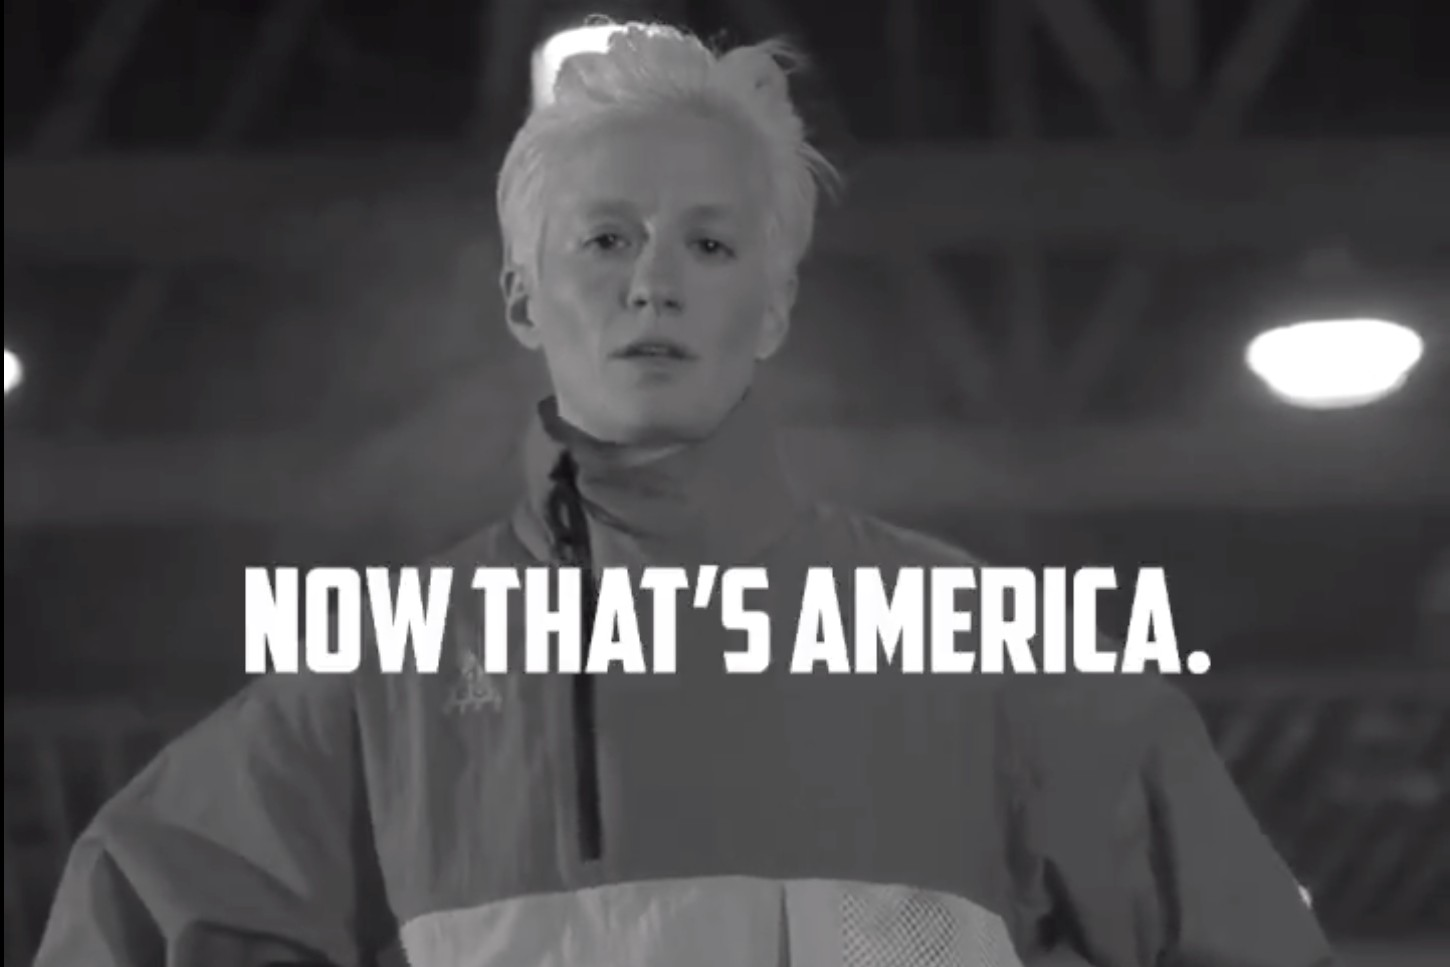 News about Megan Rapinoe, BodyArmor, Sony Walkman, John Oliver: Wake-Up Call